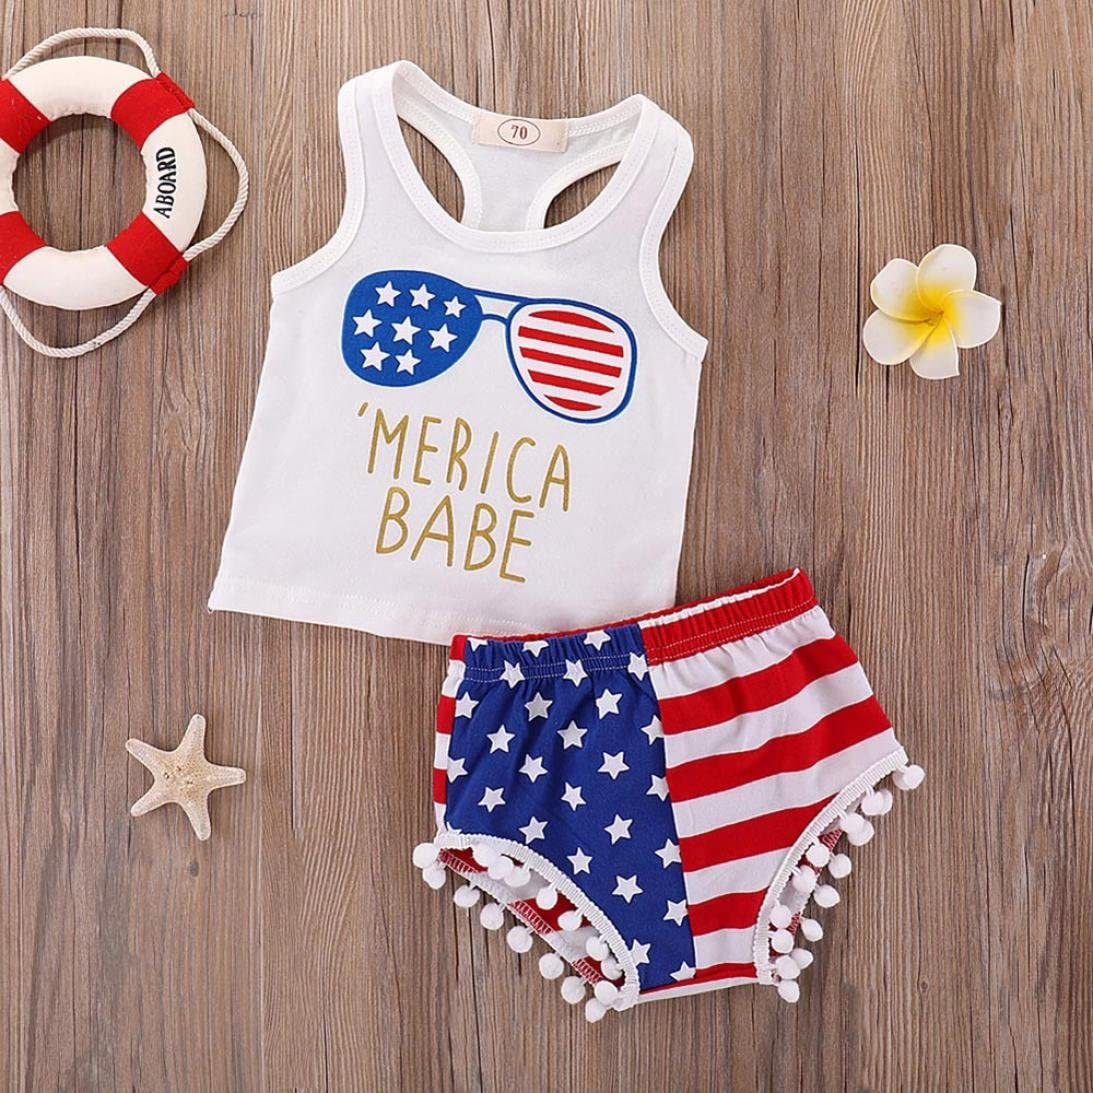 Winsummer Baby Boys Girls Merica Babe Stars Striped Vest Tops+USA Flag Shorts 4th of July Independence Day Outfits